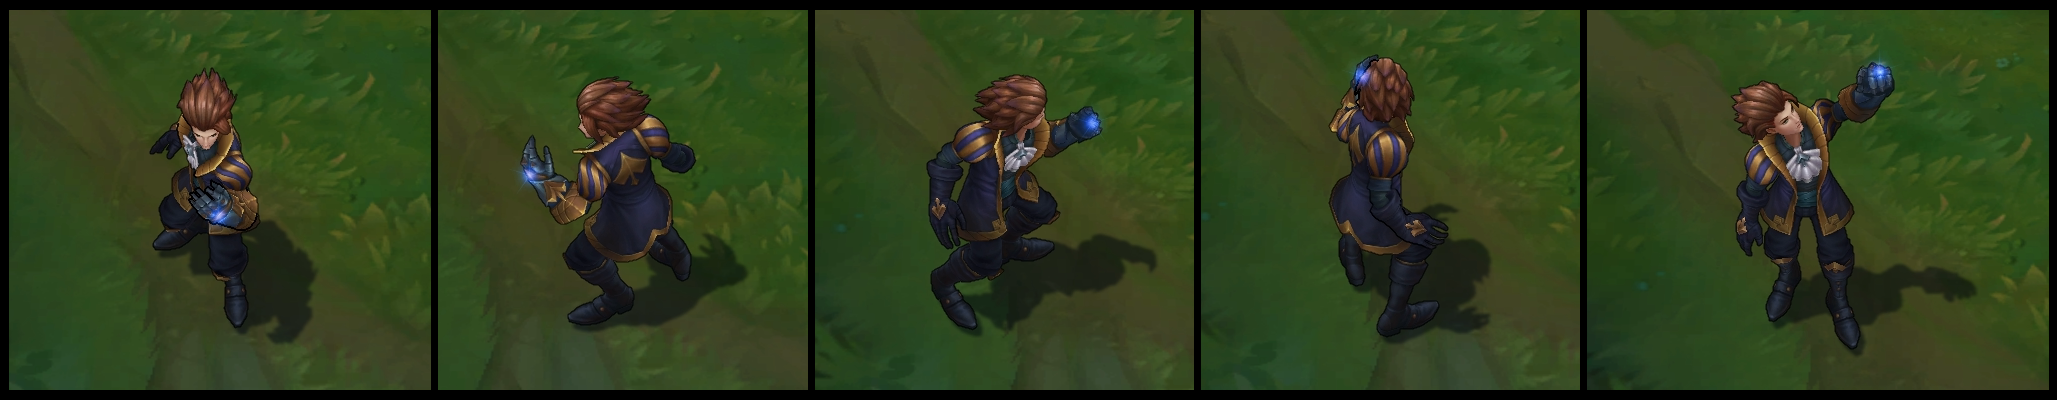 Ace of Spades Ezreal Poses I